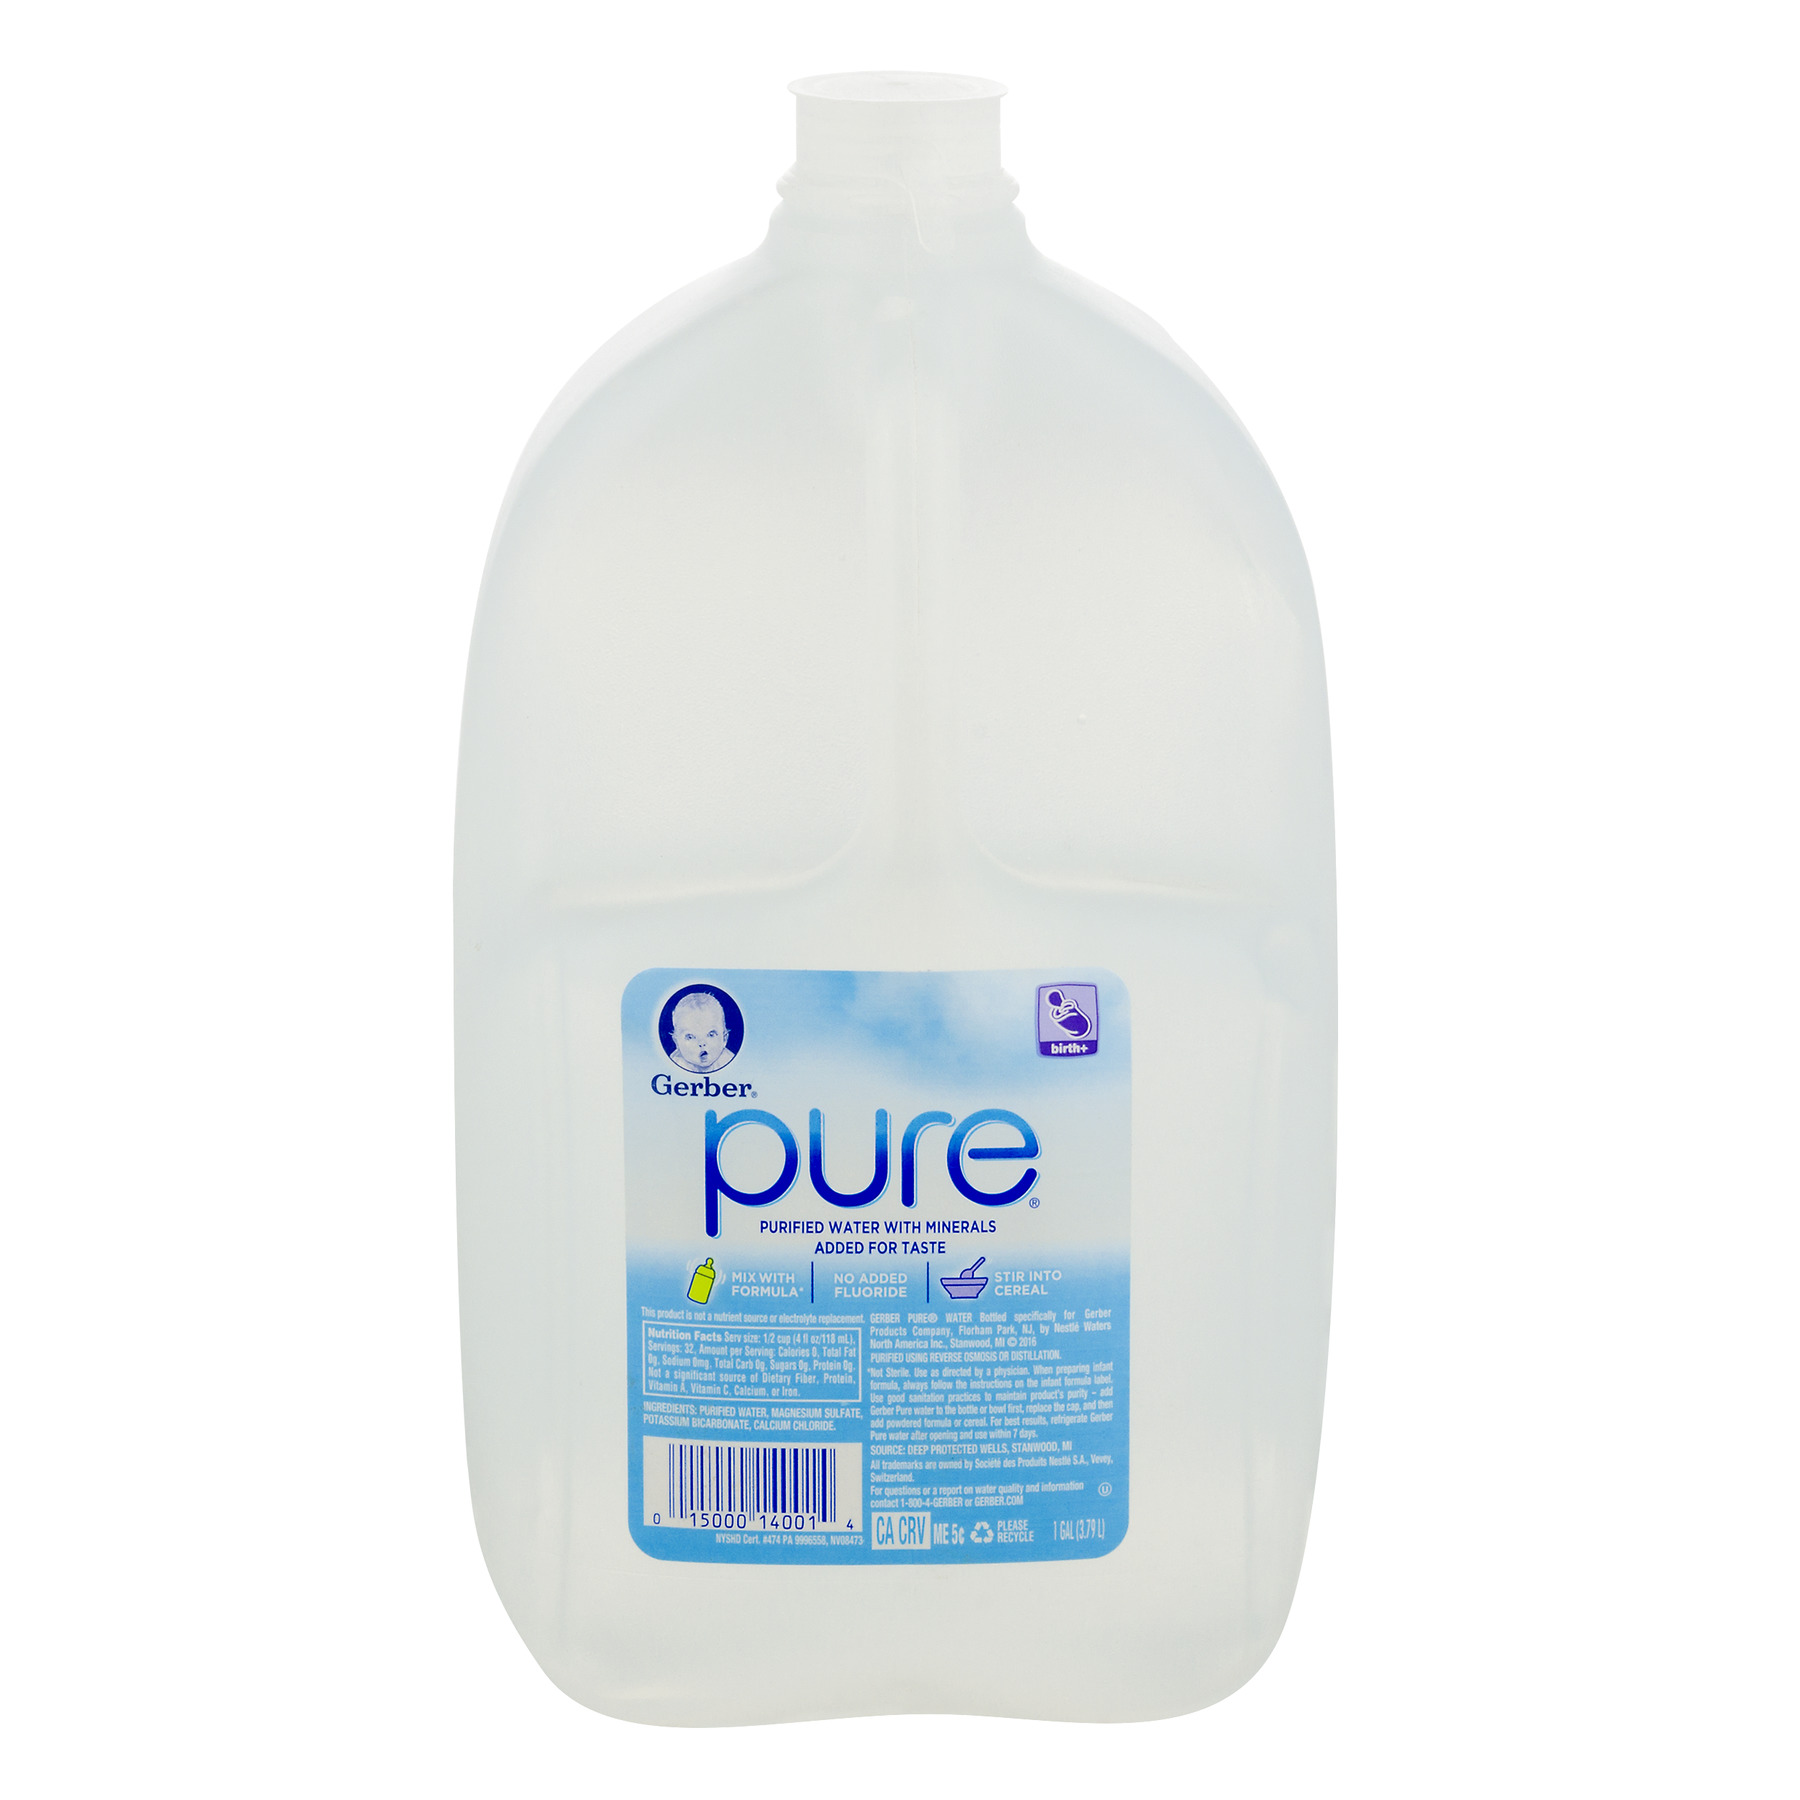 Gerber Pure Purified Water, 128 Fl Oz, 1 Count